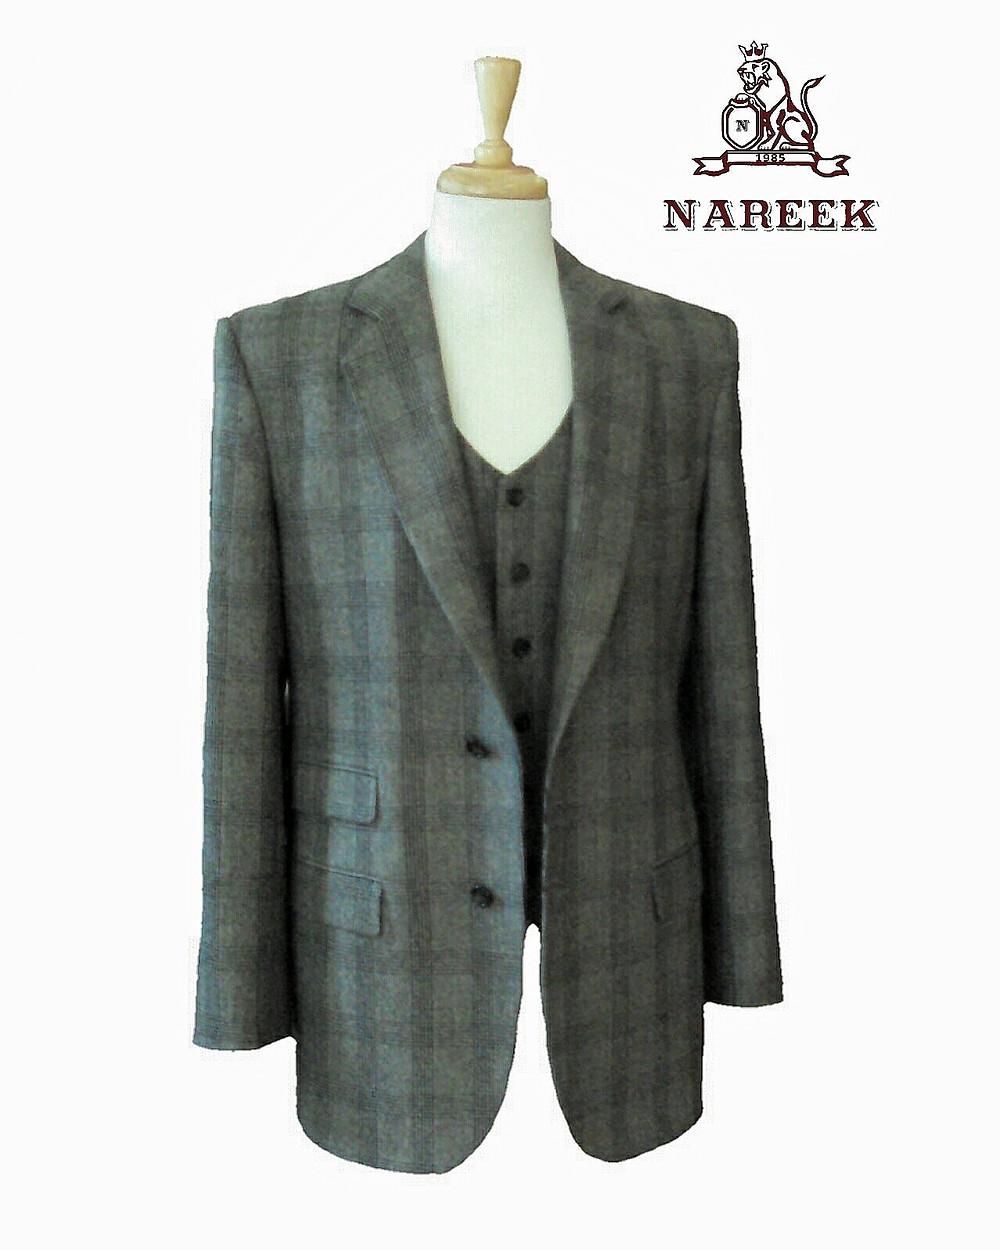 Custom made suits by NAREEK from European fabric.